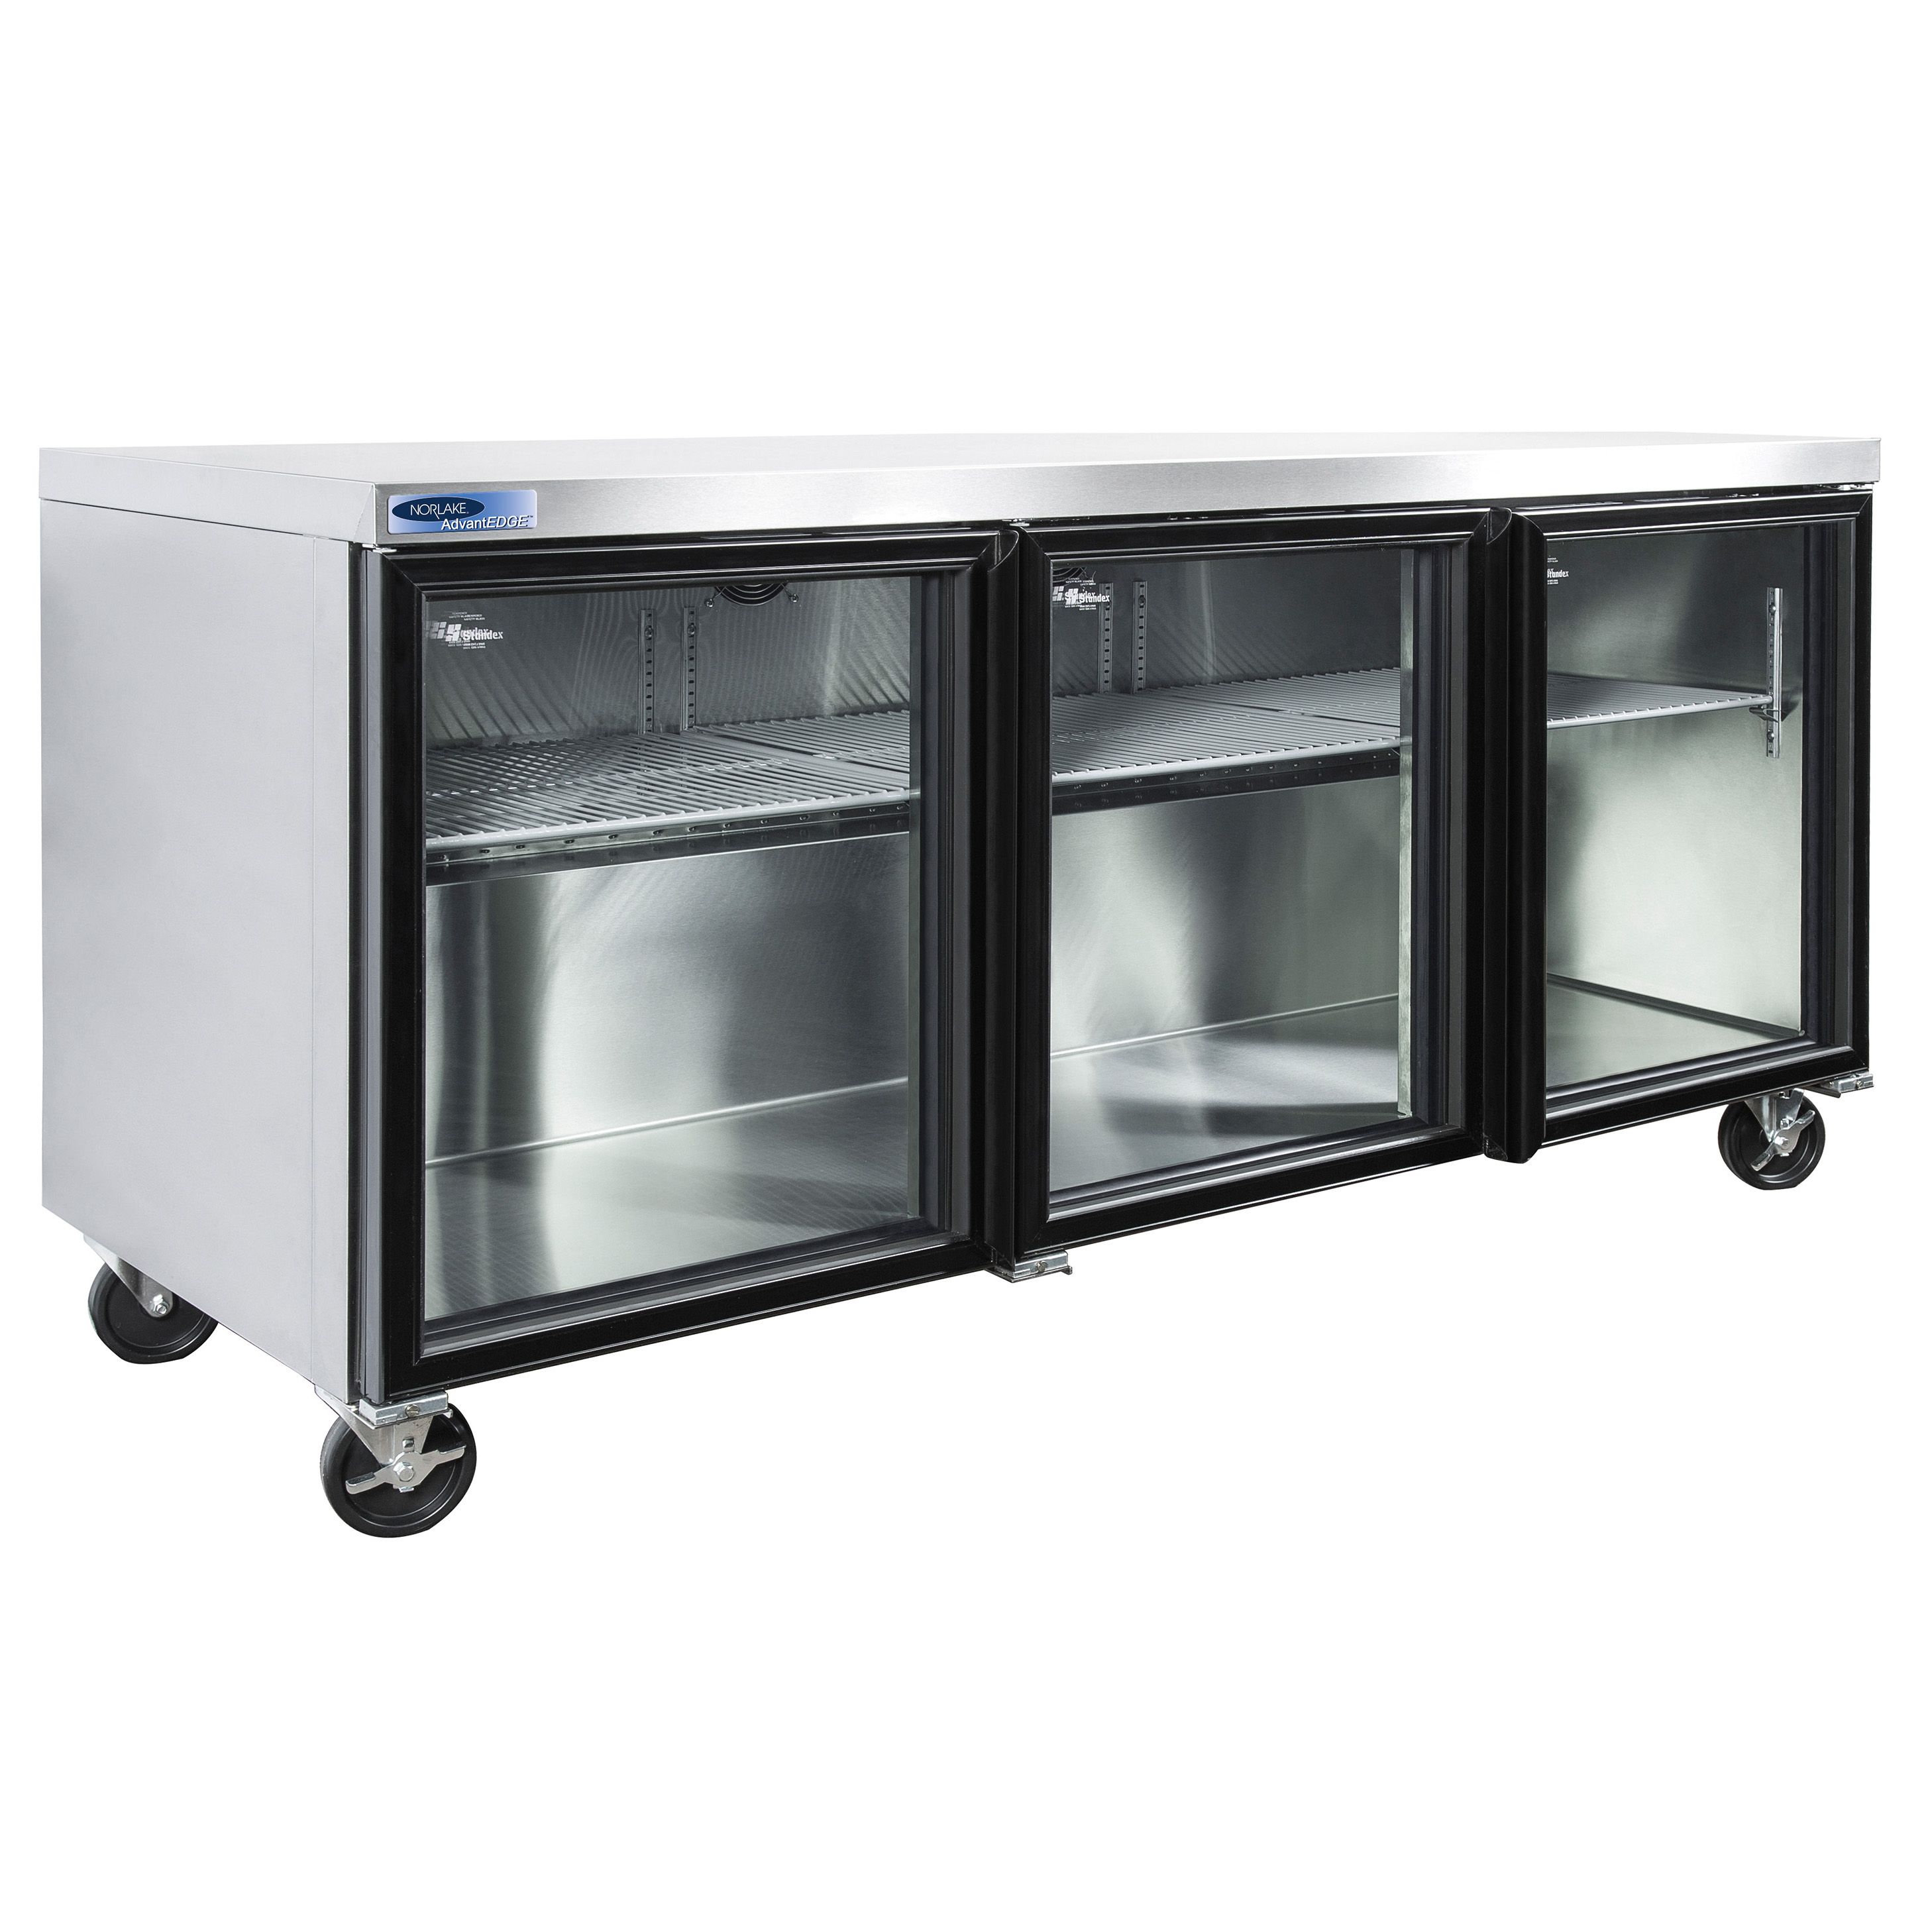 Nor-Lake NLURG72A refrigerator, undercounter, reach-in